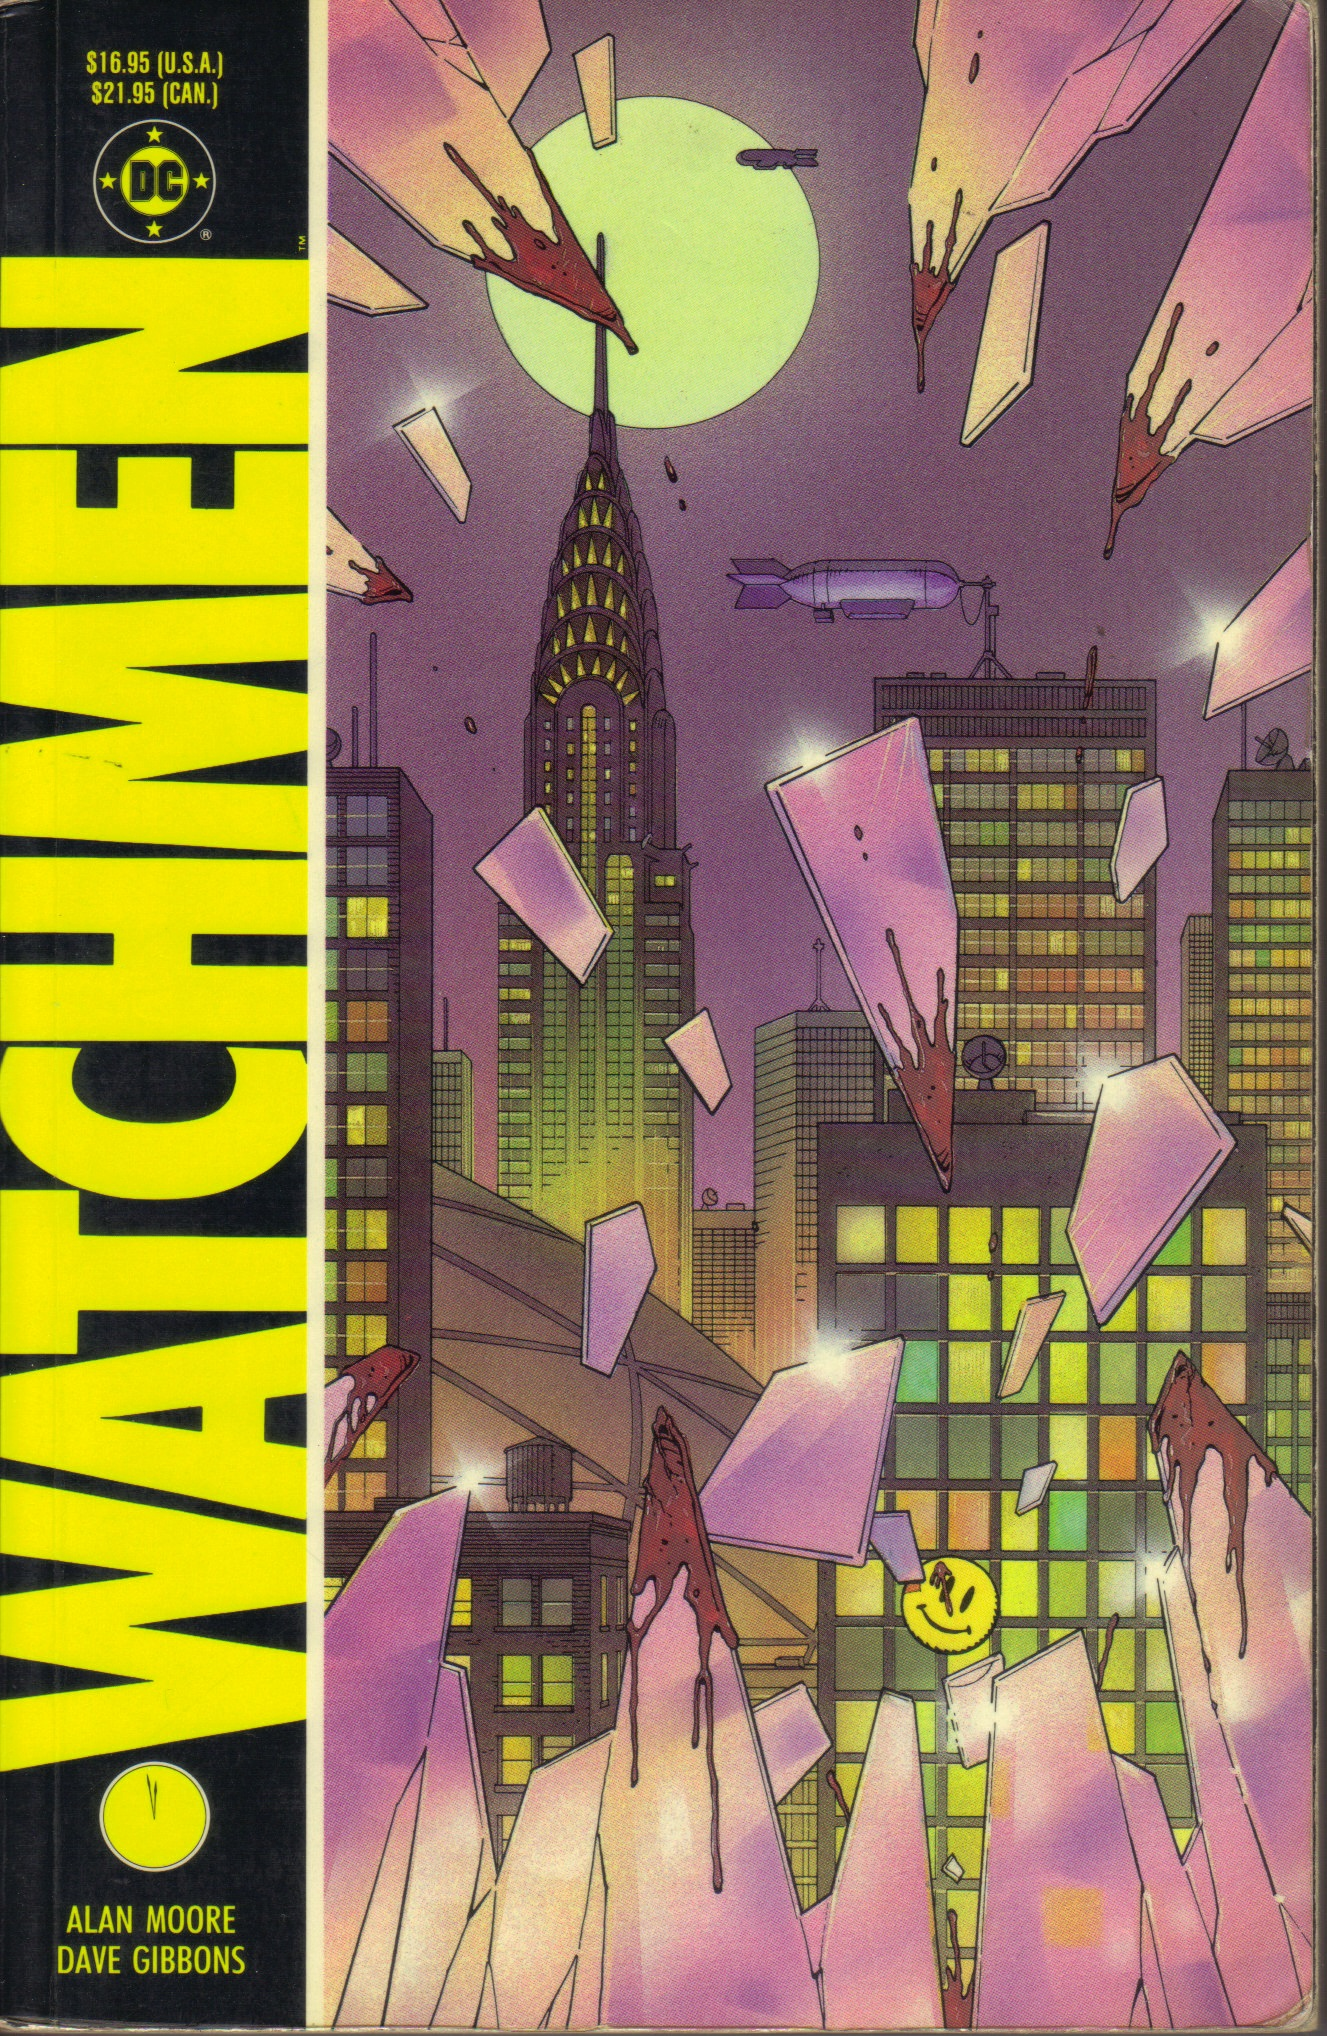 Cover of the first issue of   Watchmen   by Alan Moore and Dave Gibbons (via    Open Letters Monthly   )